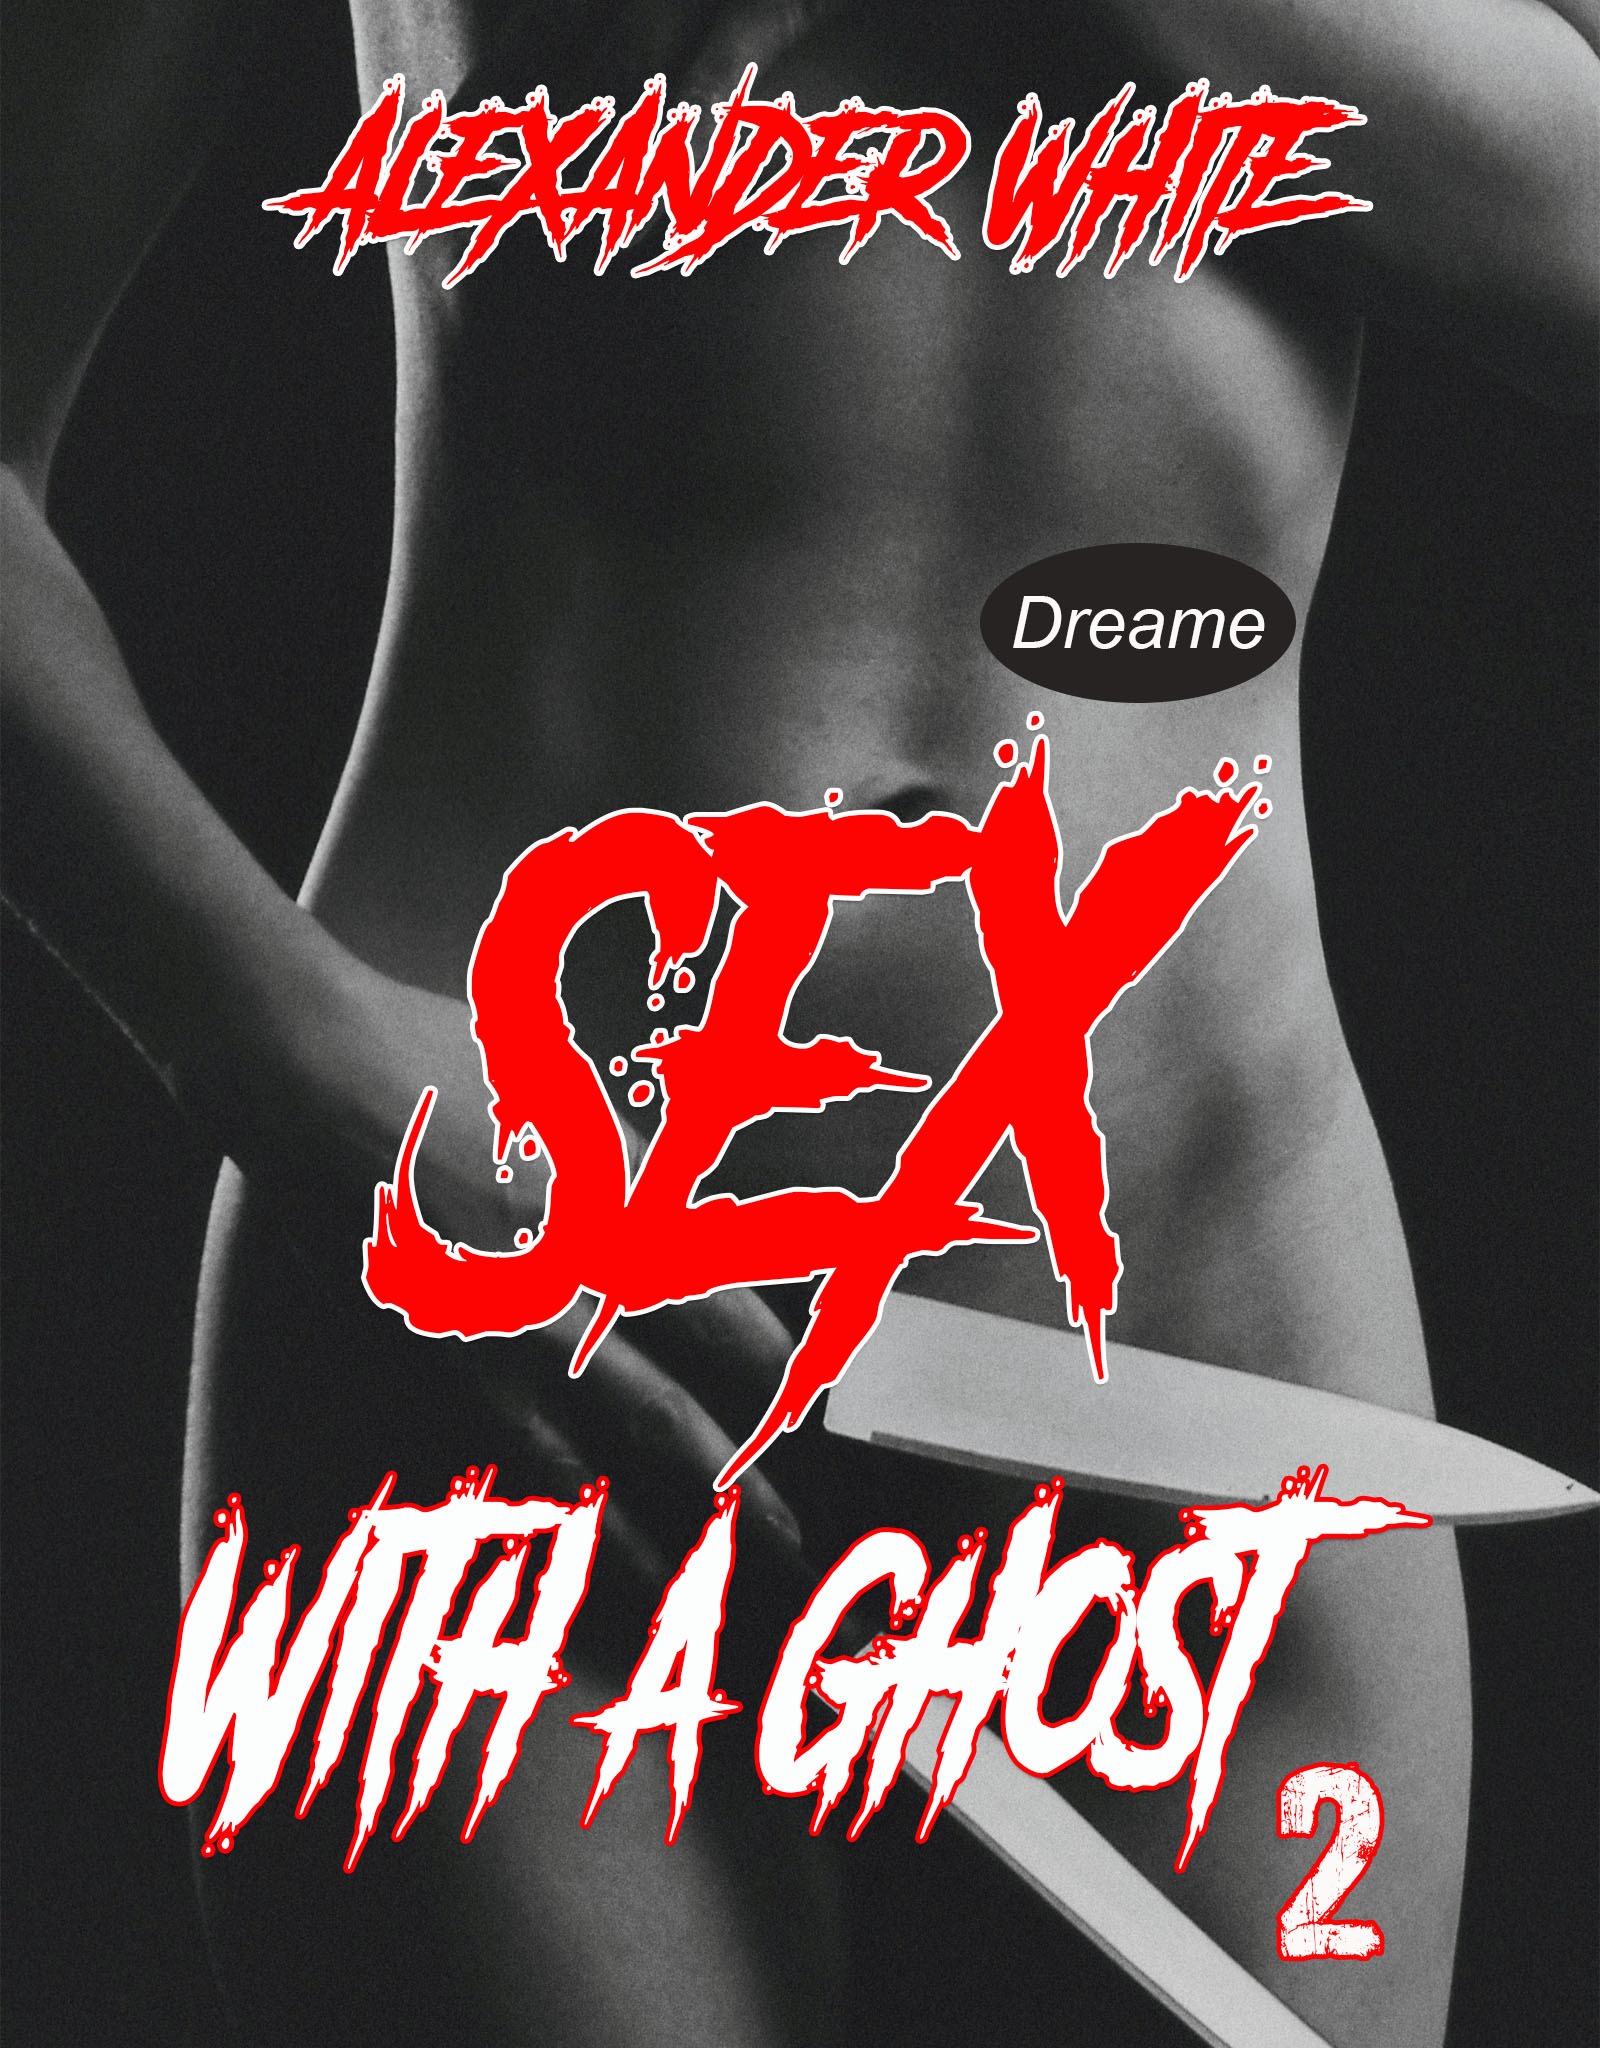 SEX WITH A GHOST 2